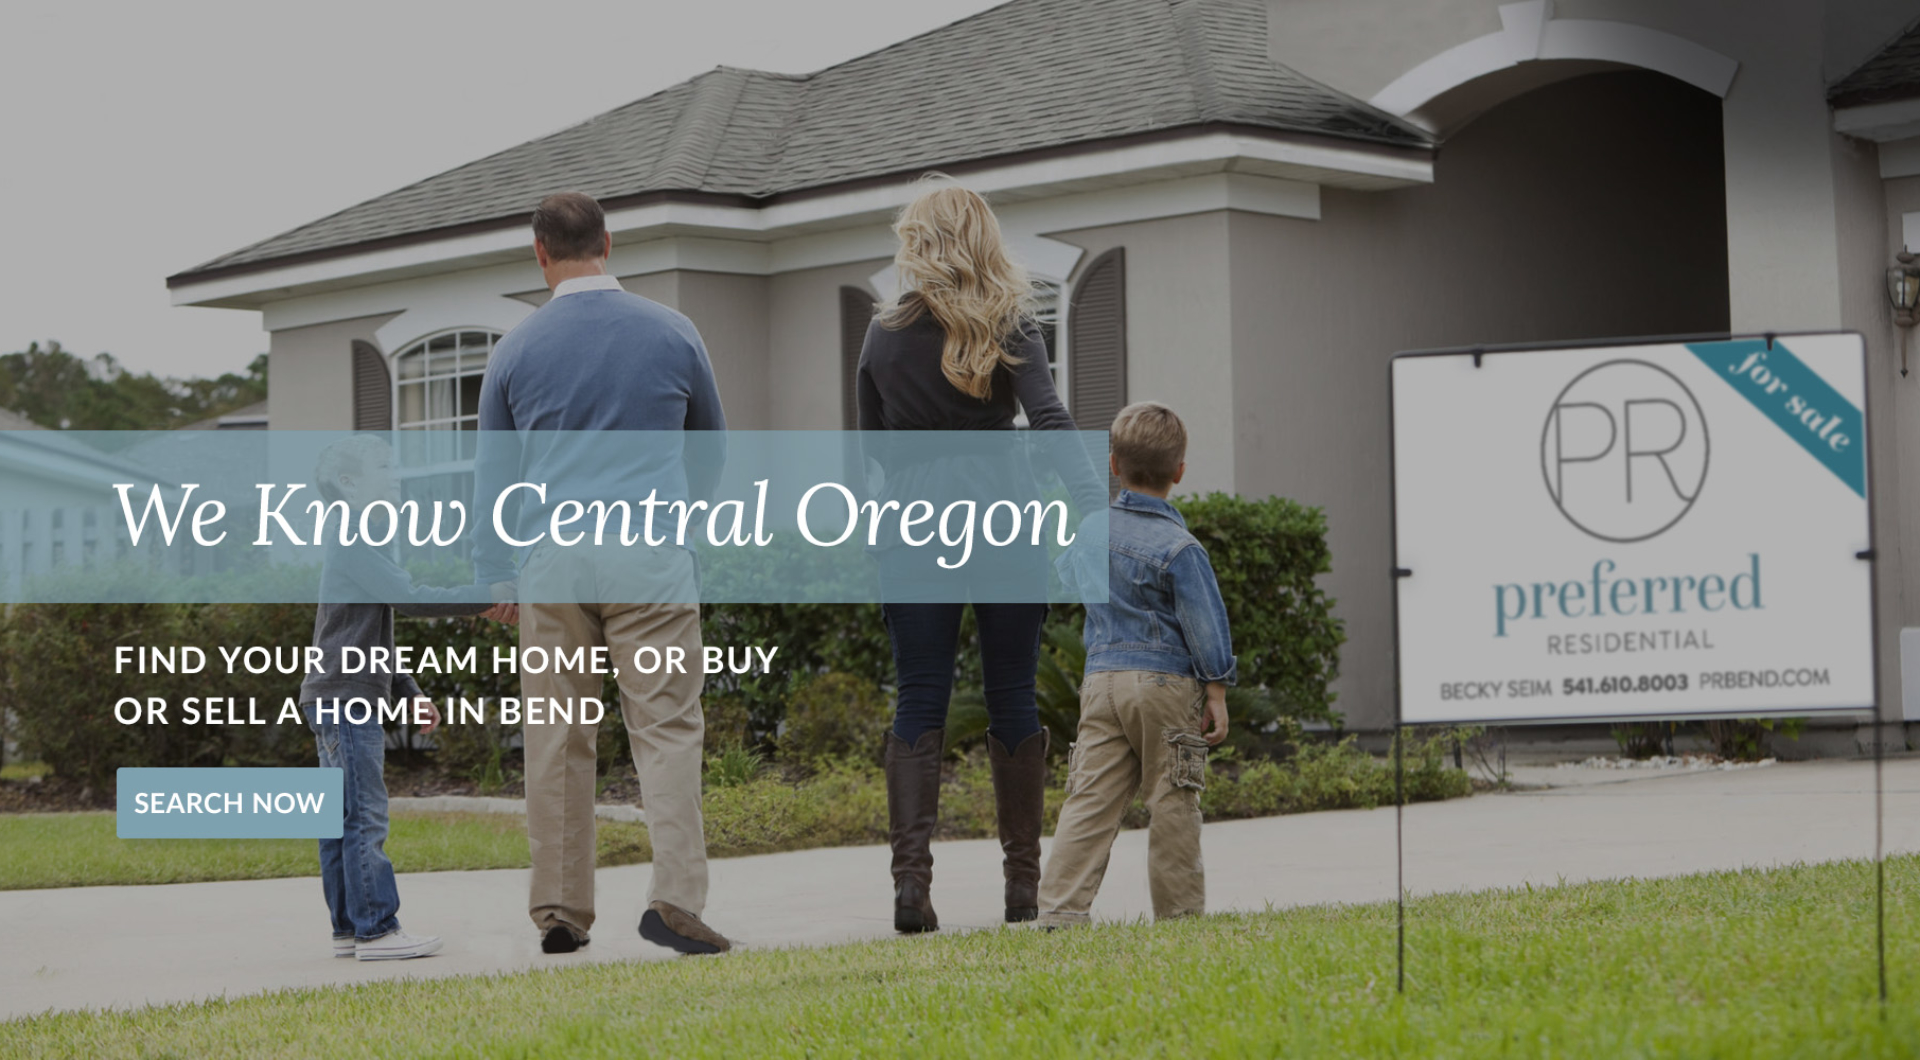 Buying a home in Central Oregon